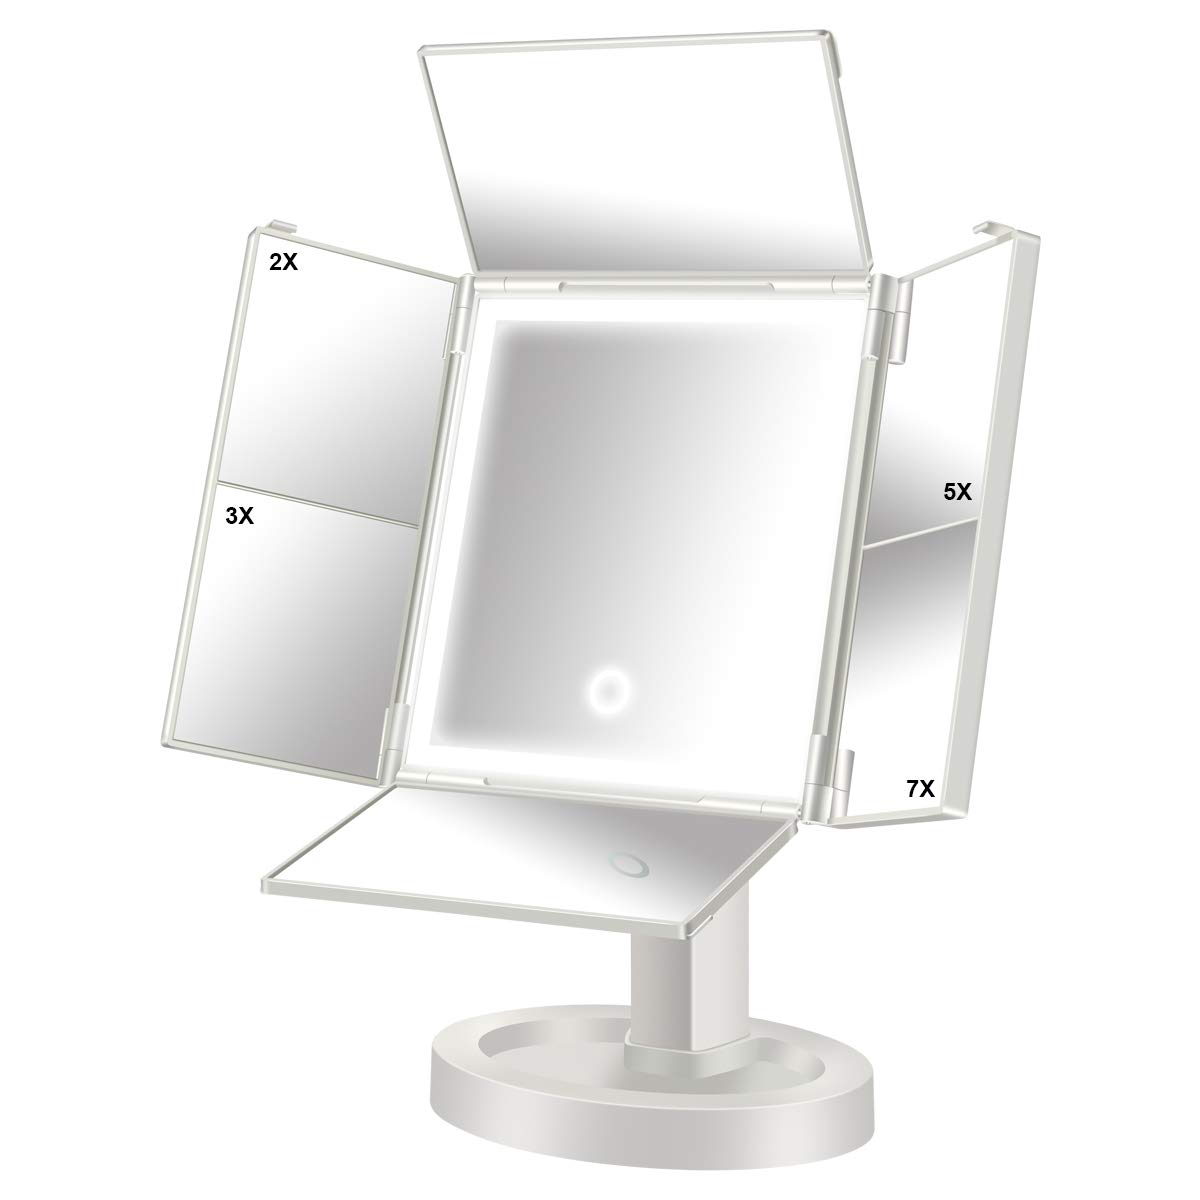 QIMAOO Makeup Vanity Mirrors with Light, 2×/3×/5×/7× Magnifying Soft Natural Light Ultra-Thin Stable Base, 34 Led Lighted Mirror with Touch Screen